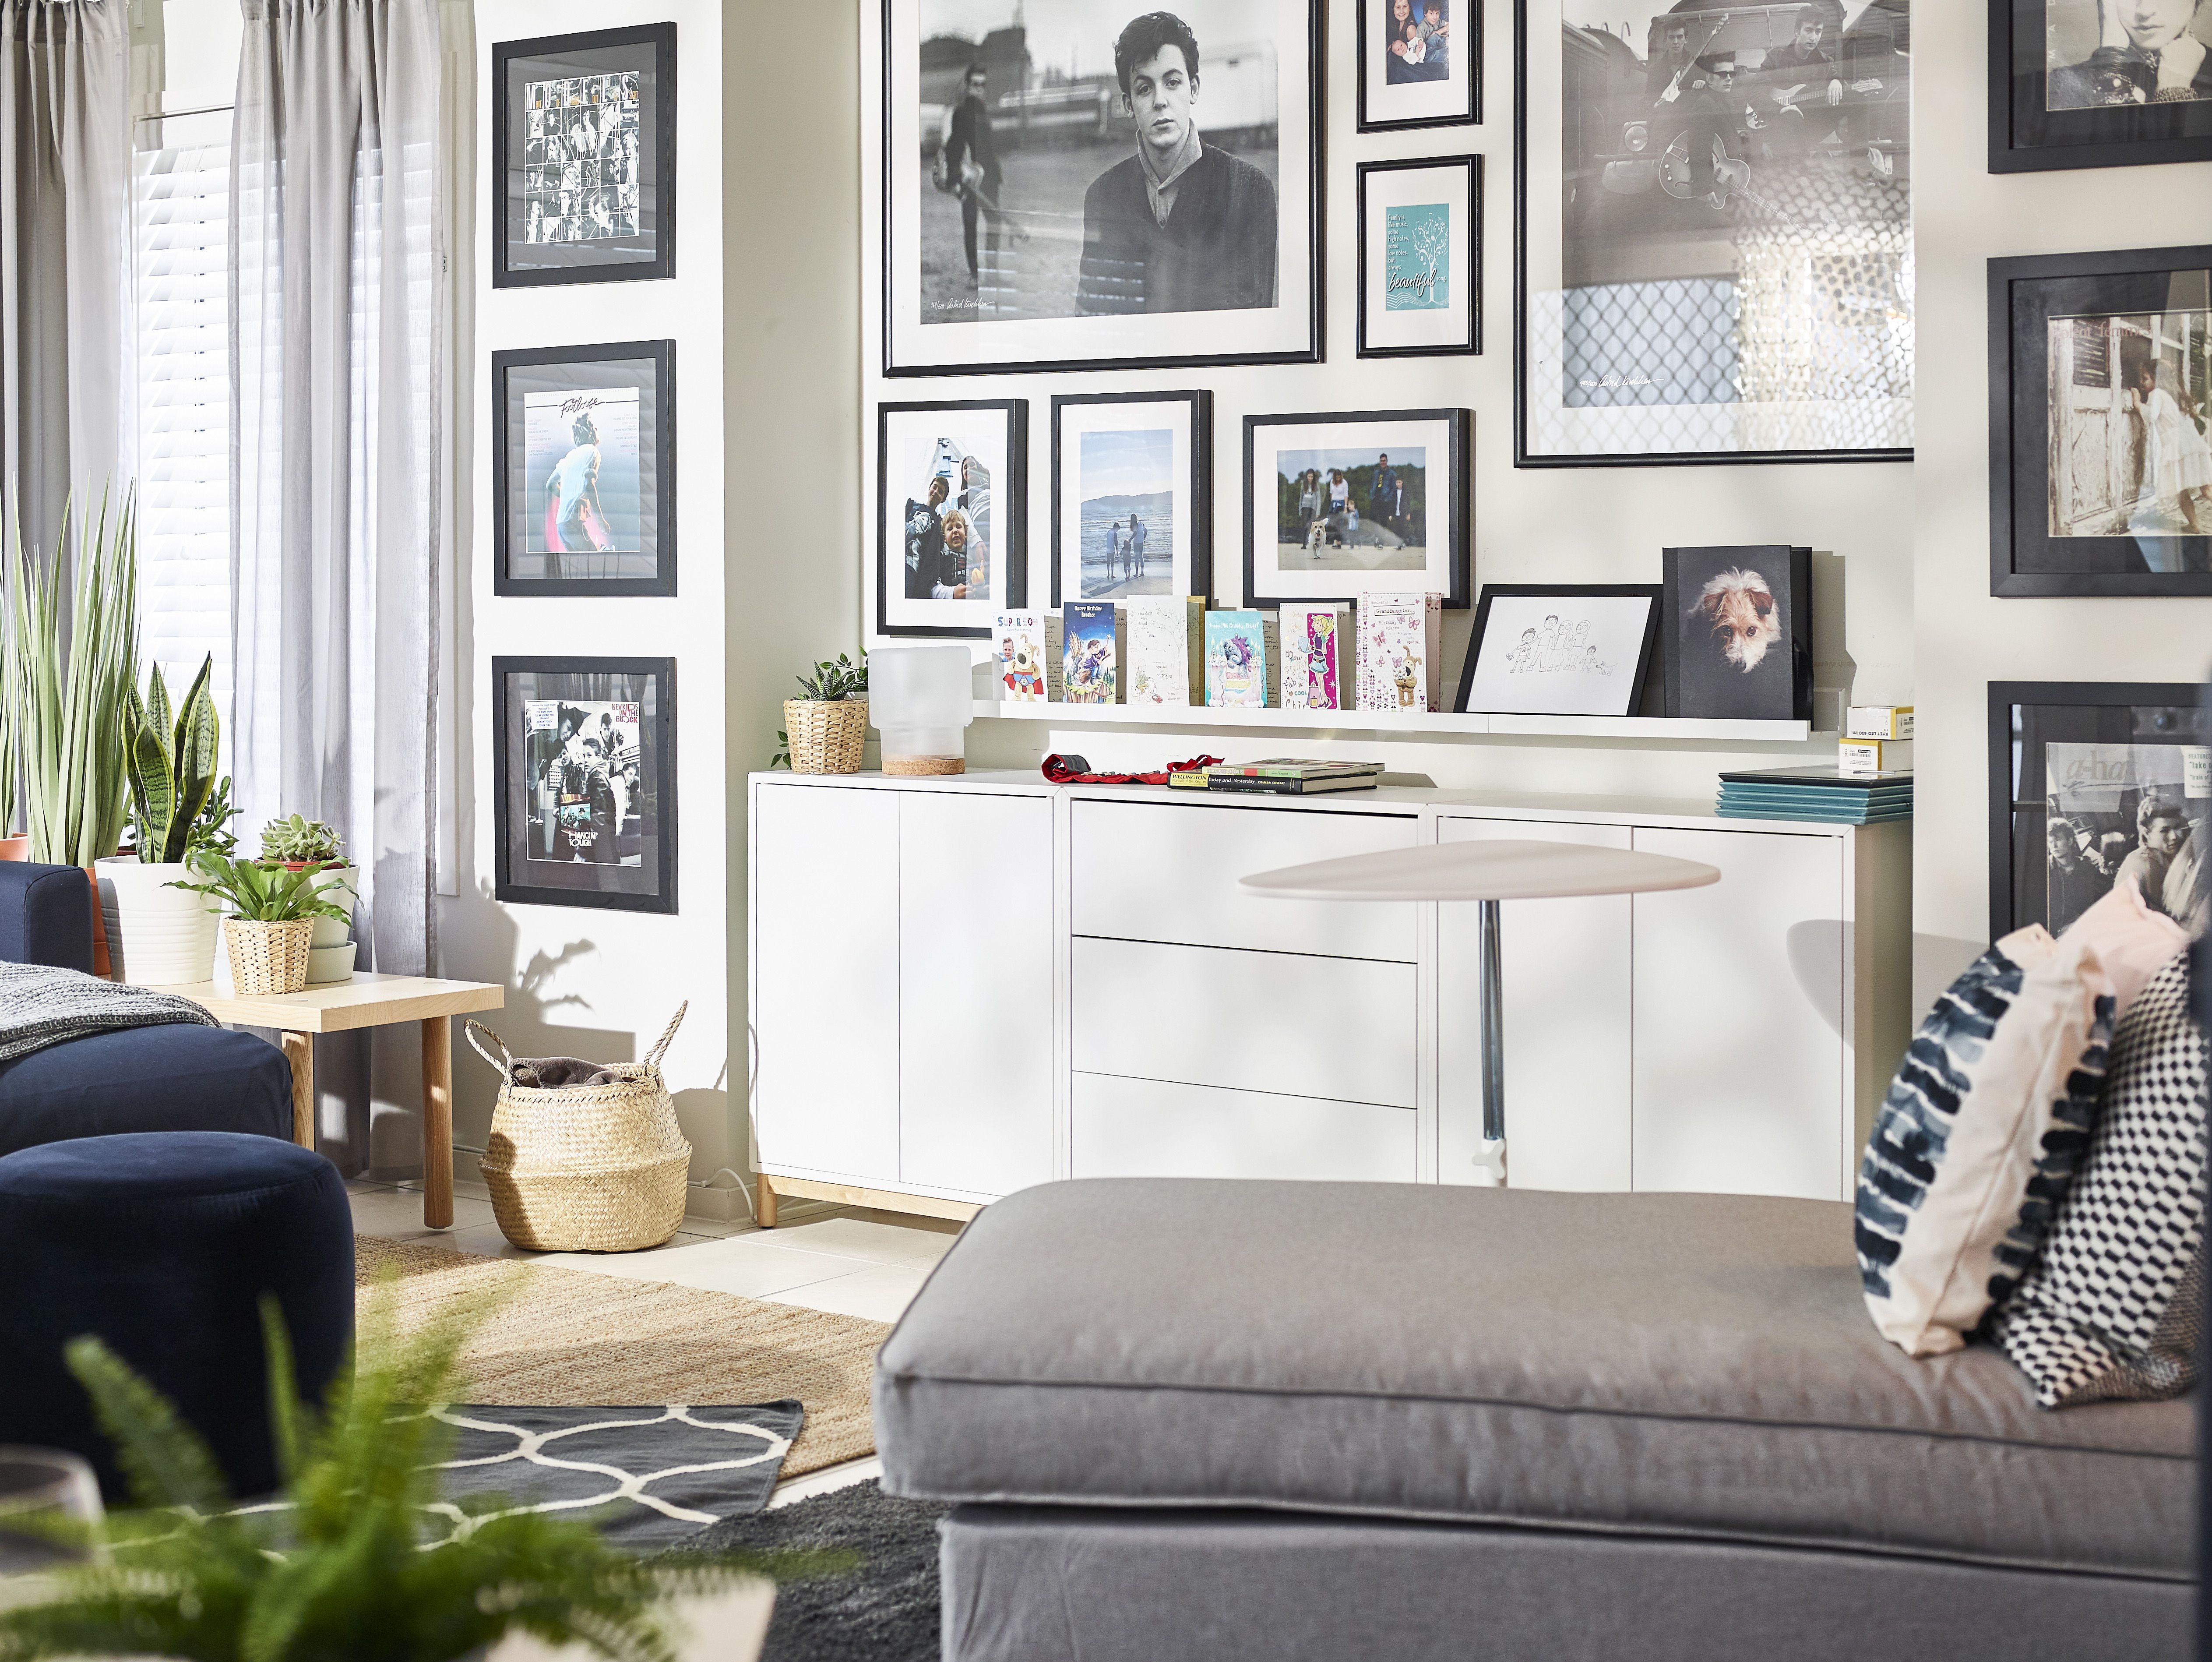 ikea  you we don't believe in perfect homes we believe